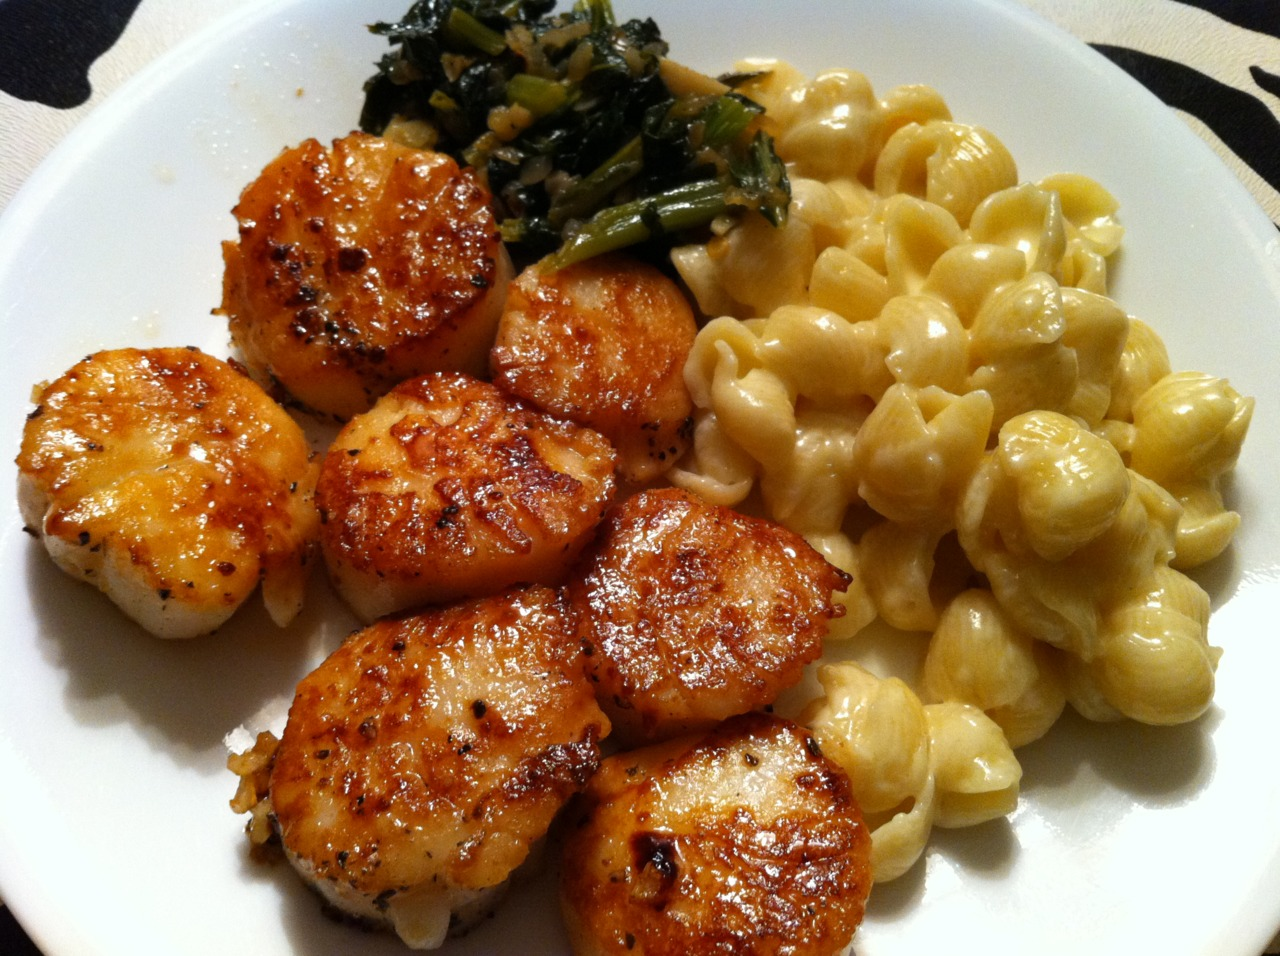 Scallops, Macaroni & Cheese with truffle oil, and greens. We ate at home Saturday :)